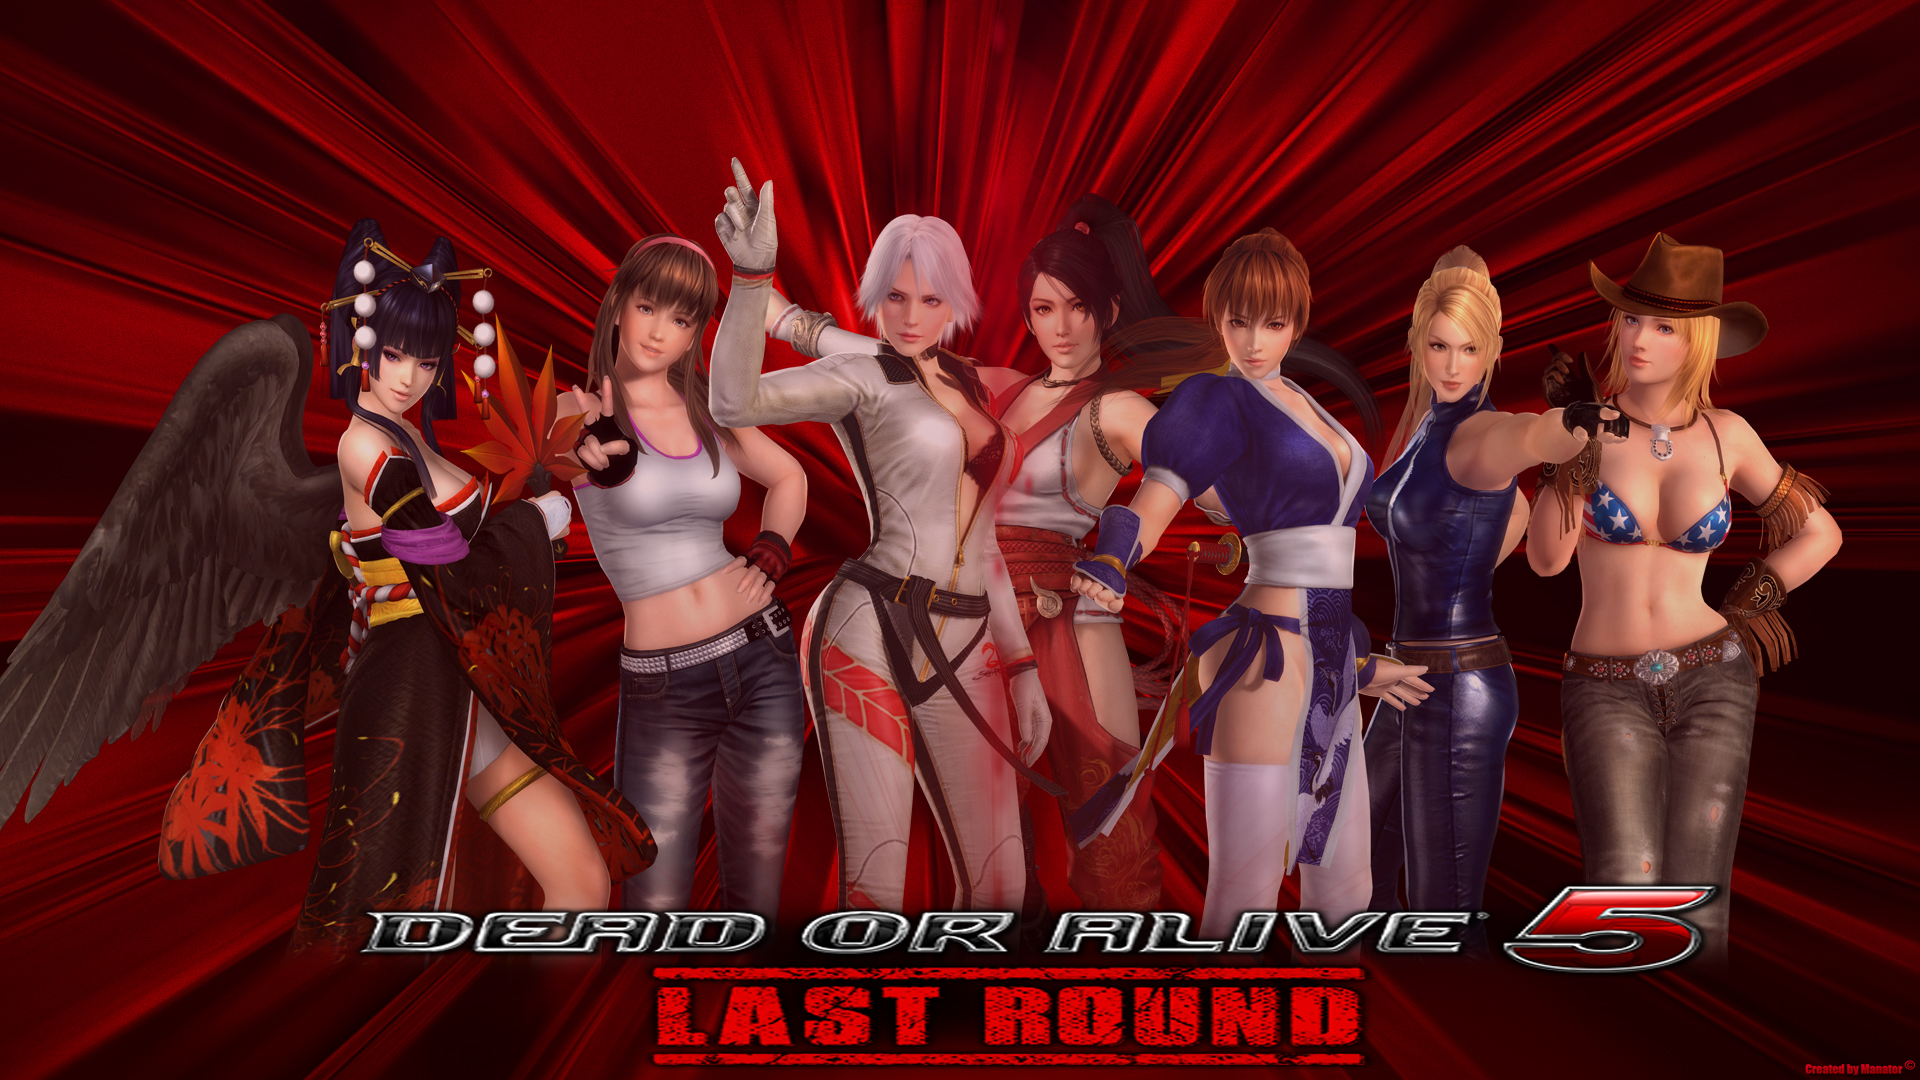 https://xgm.guru/p/aboutgames/doa5lr